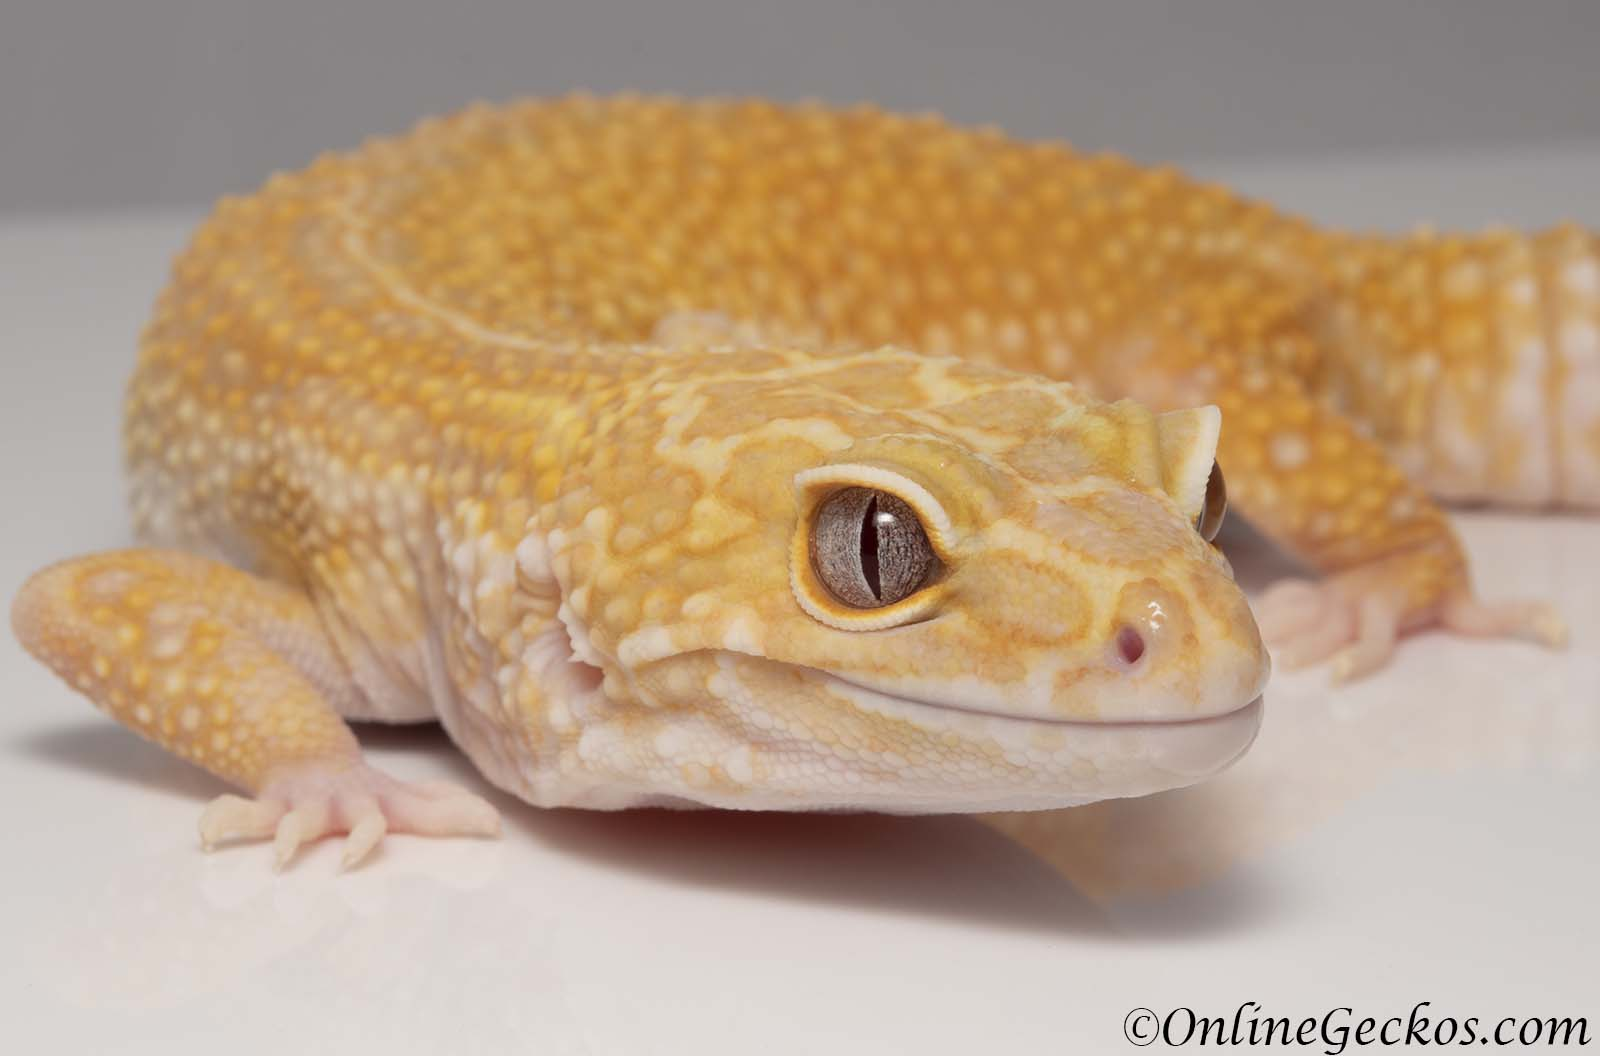 leopard gecko hatchling before after 2019 update onlinegeckos.com